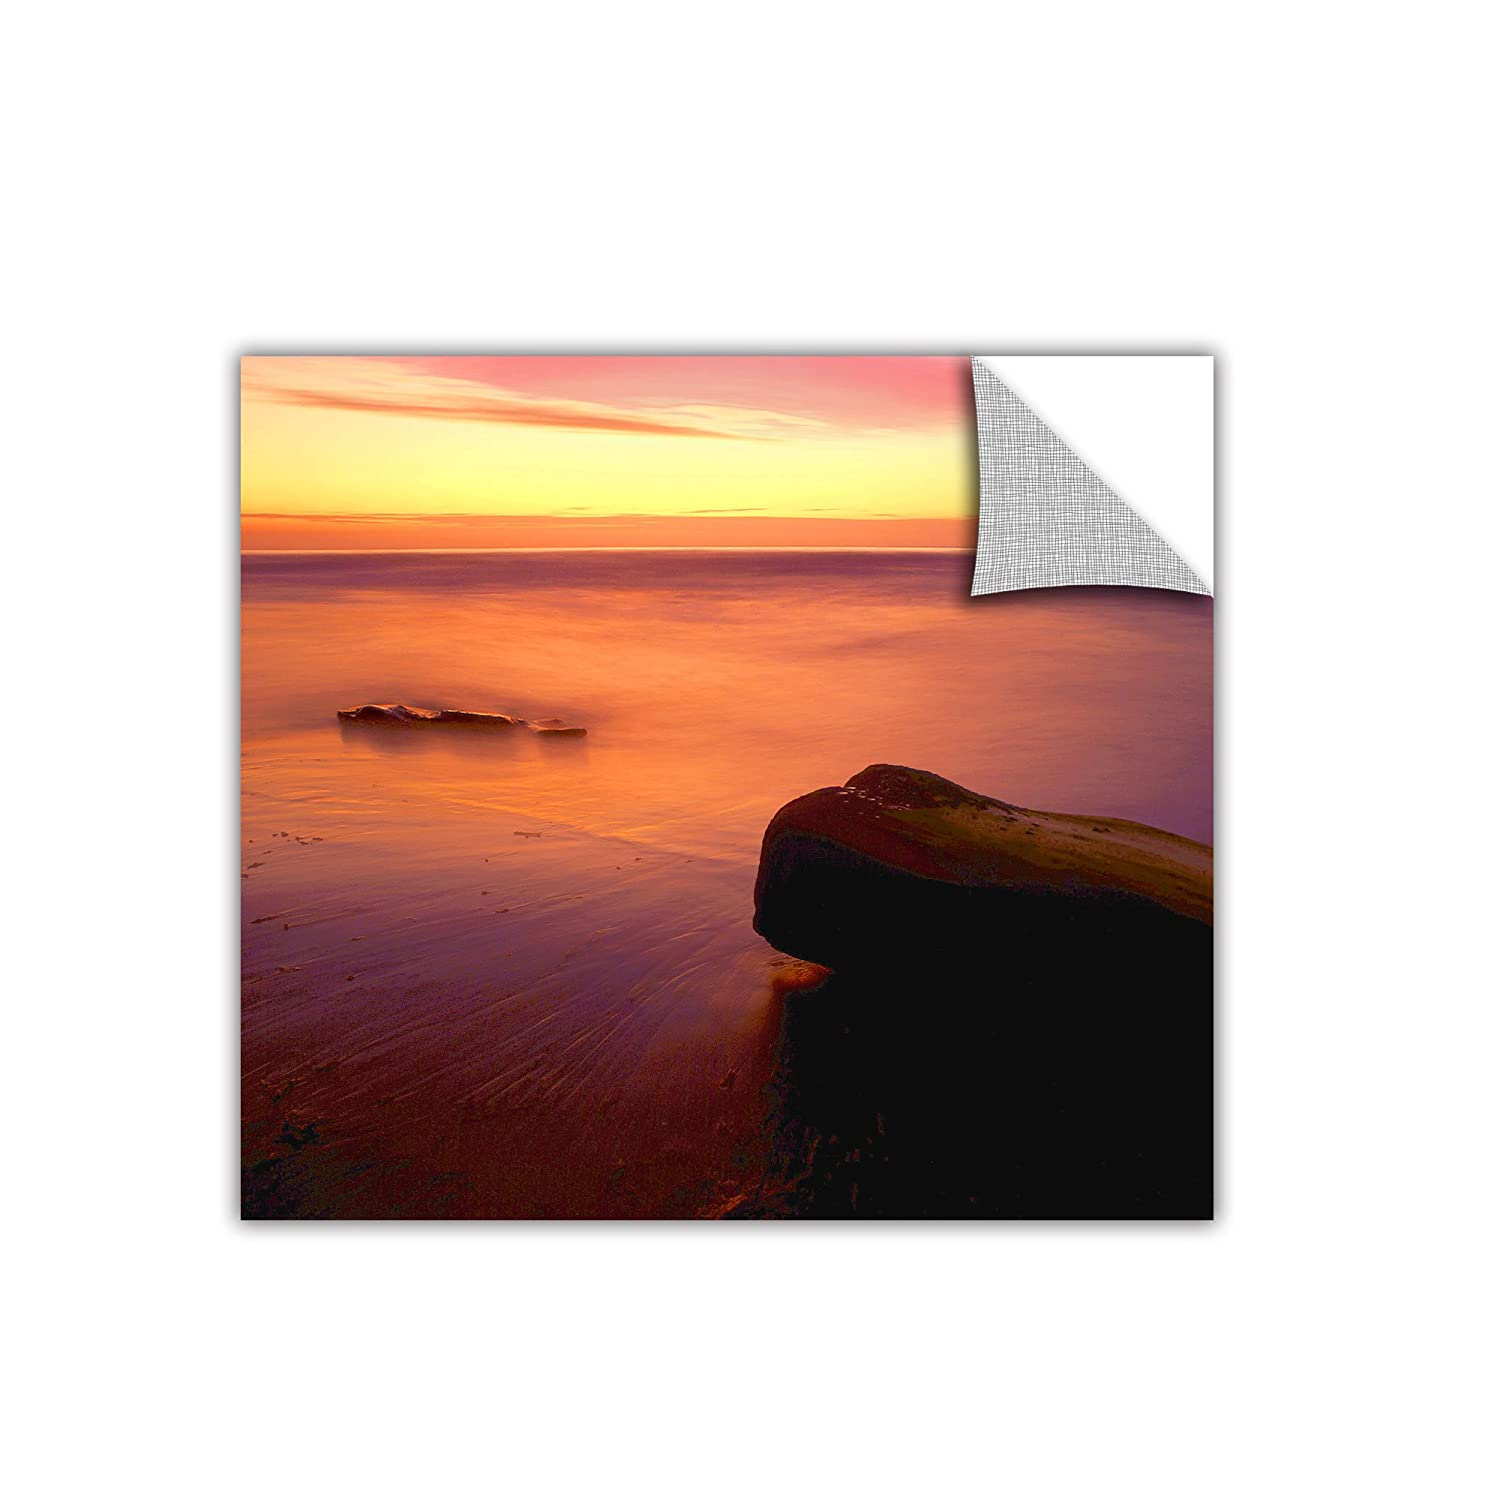 ArtWall Appealz Dean Uhlinger Deep Twilight Removable Graphic Wall Art 24 by 24-Inch